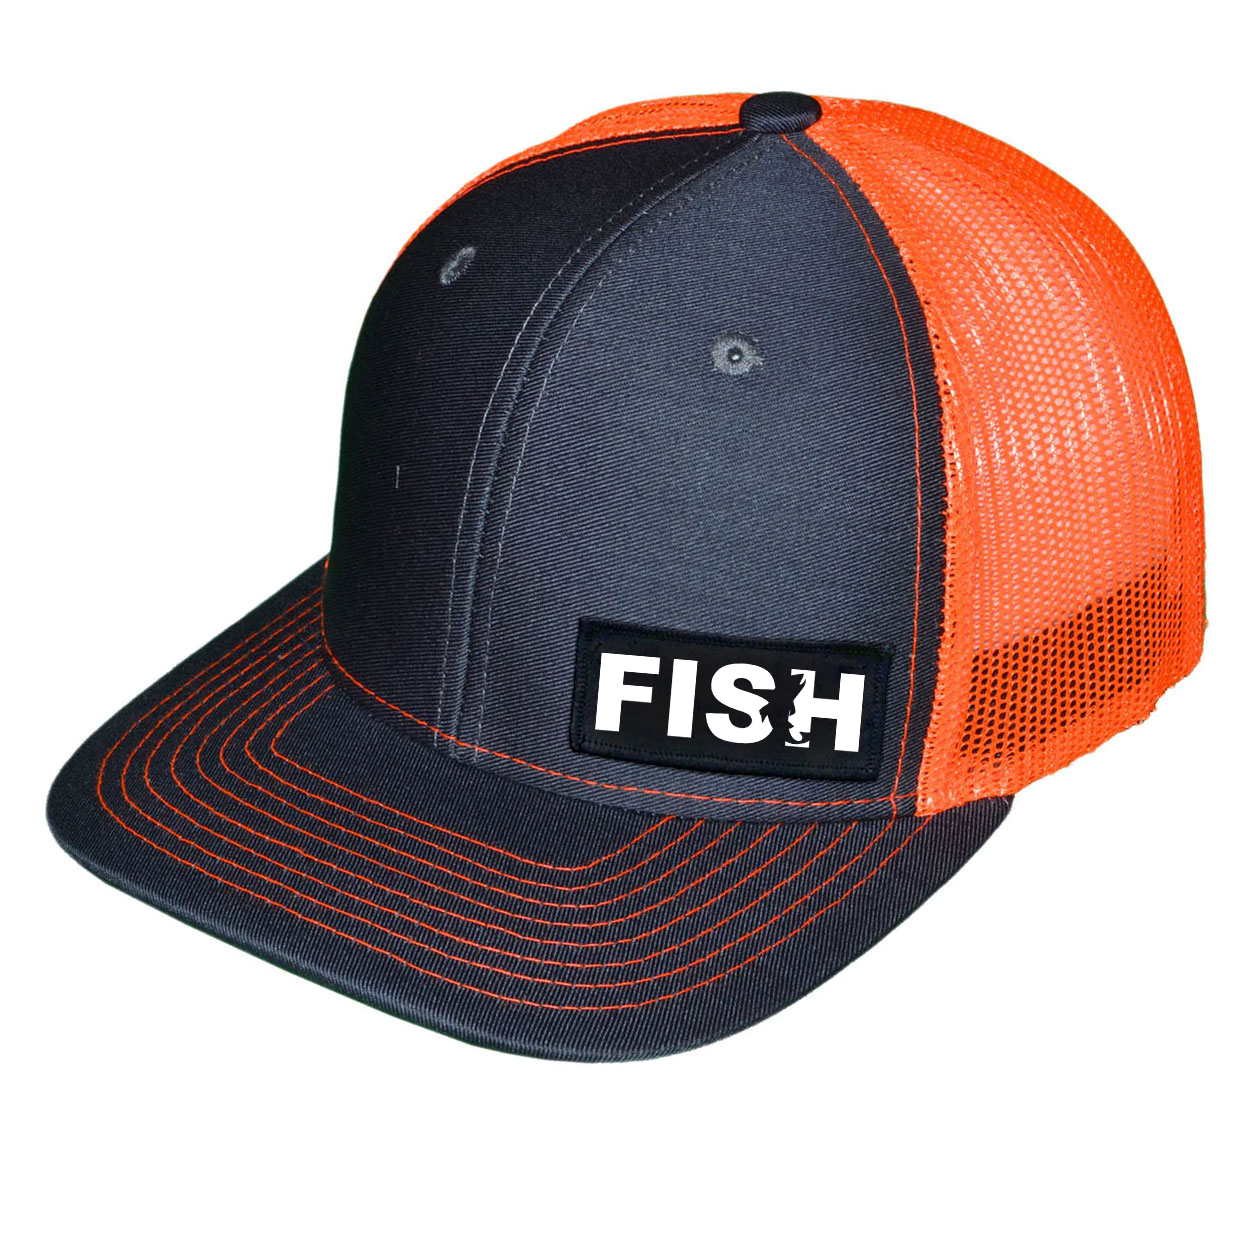 Fish Catch Logo Night Out Woven Patch Snapback Trucker Hat Dark Gray/Orange (White Logo)